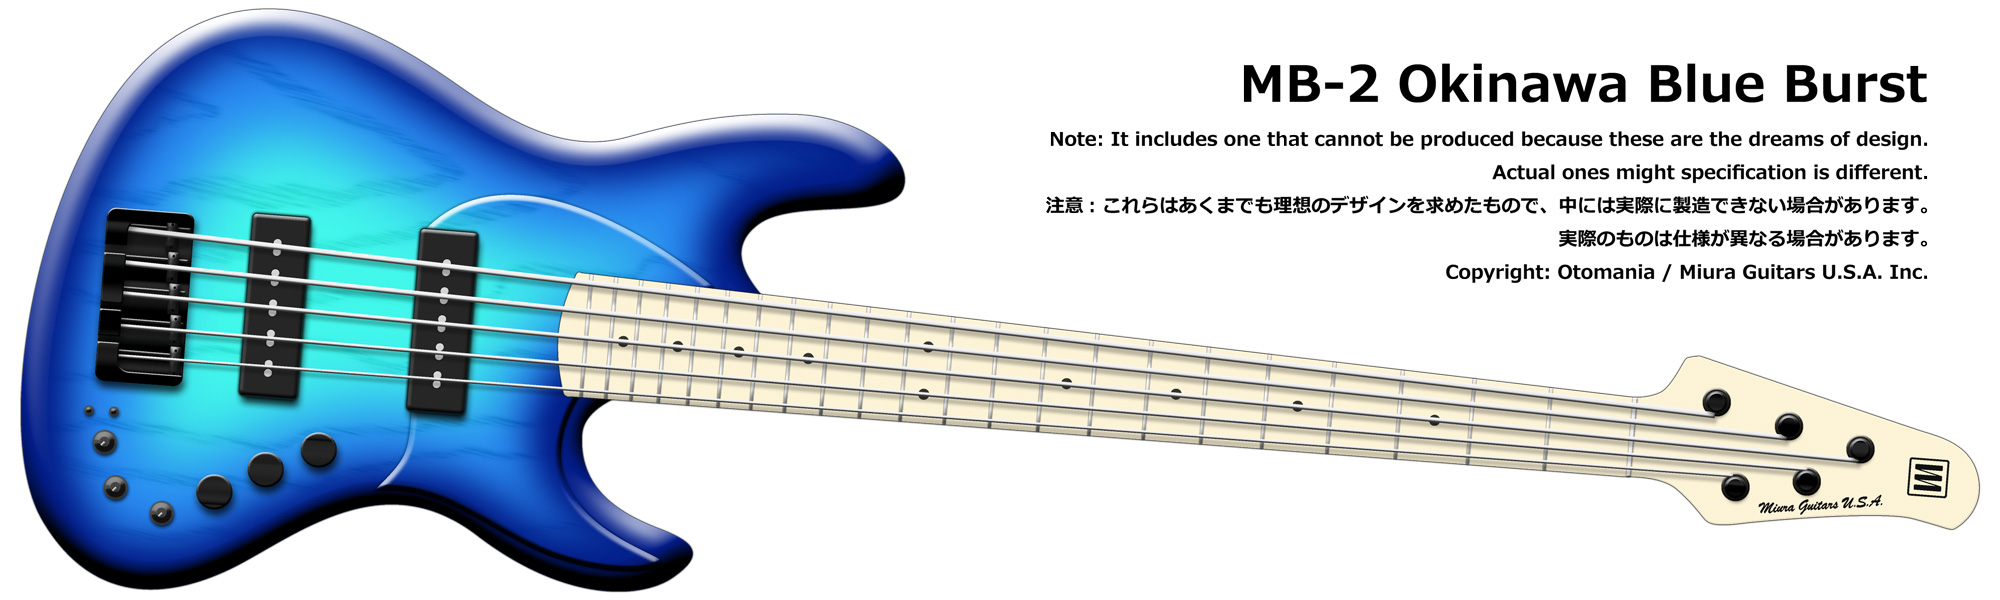 MB-2 Okinawa Blue Burst